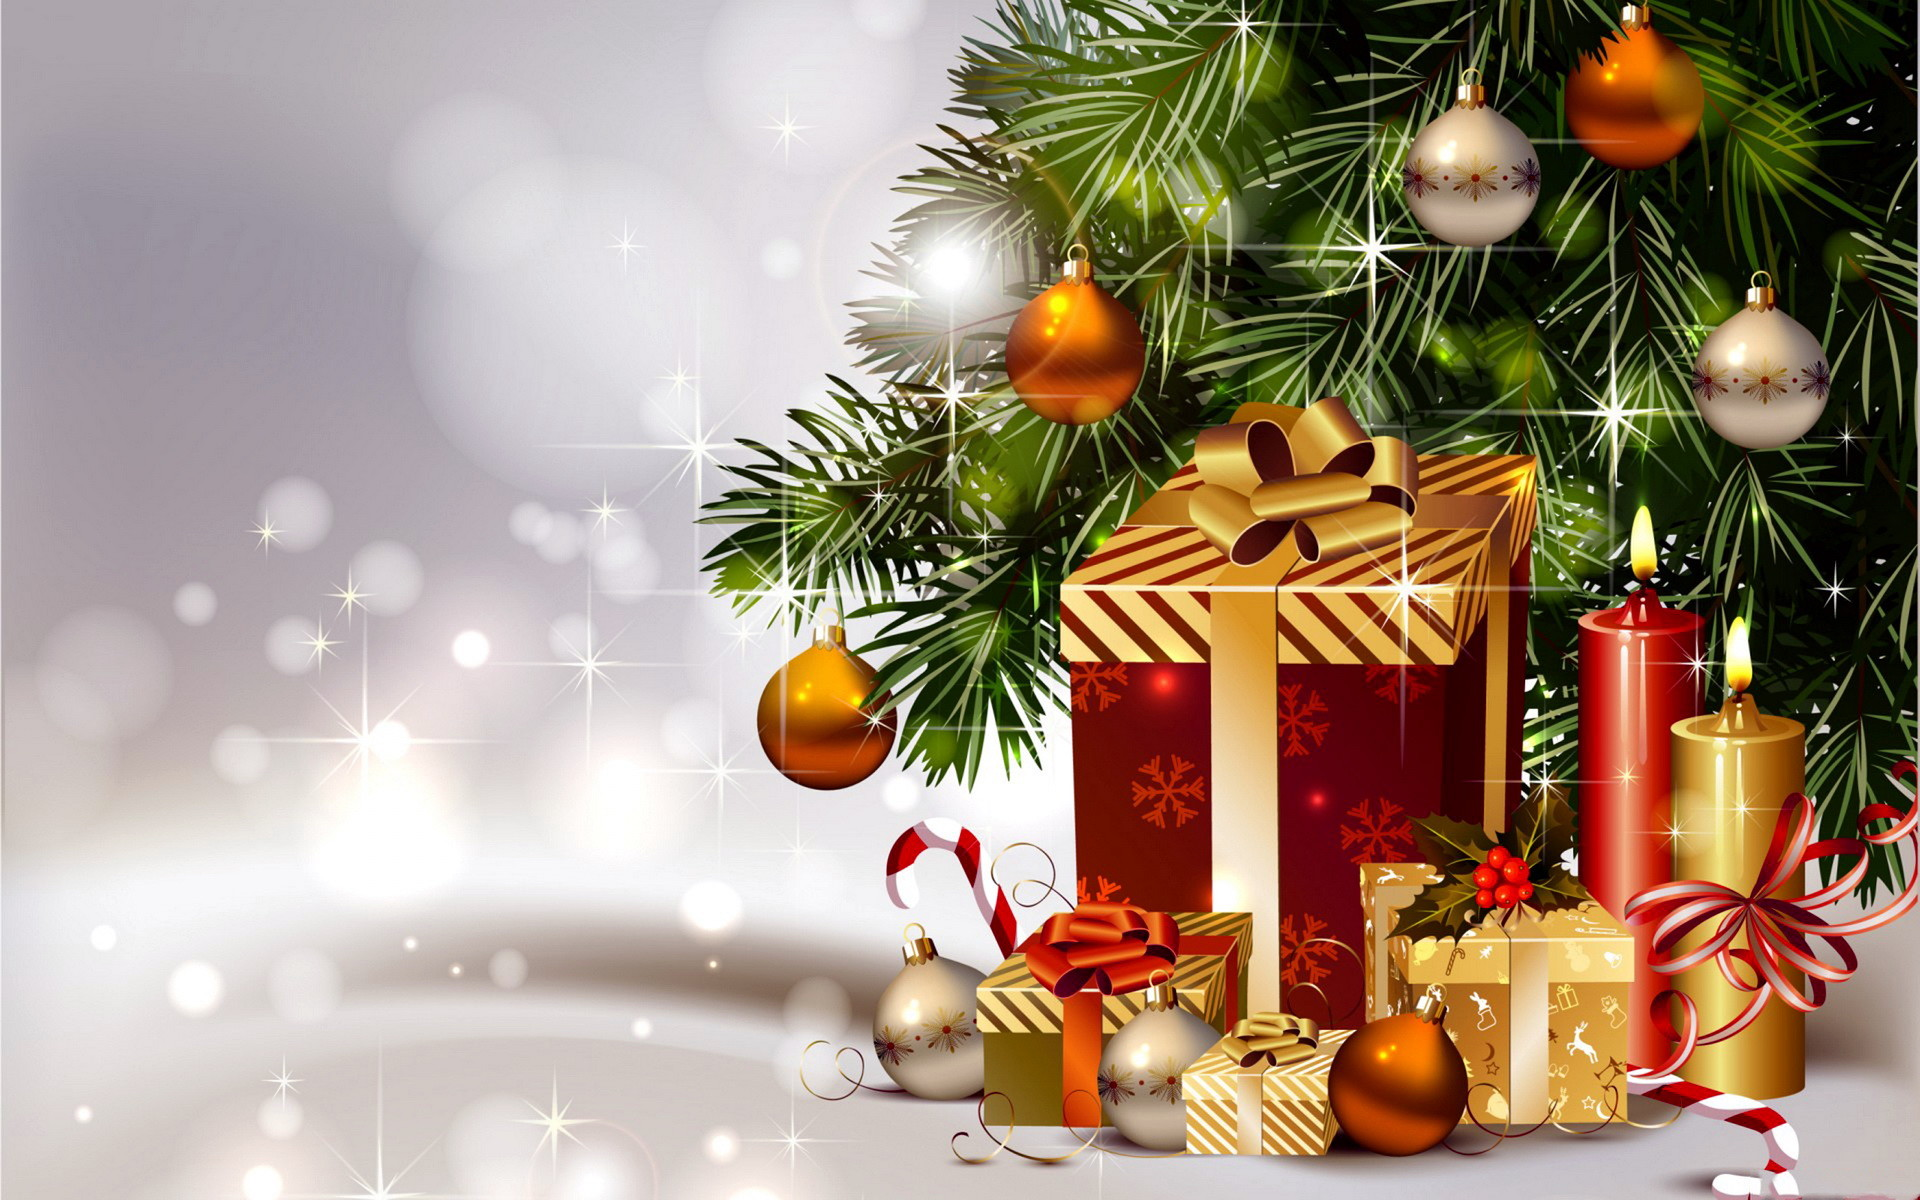 1920x1200 3D Christmas Wallpapers - Free download latest 3D Christmas Wallpapers for  Computer, Mobile, iPhone